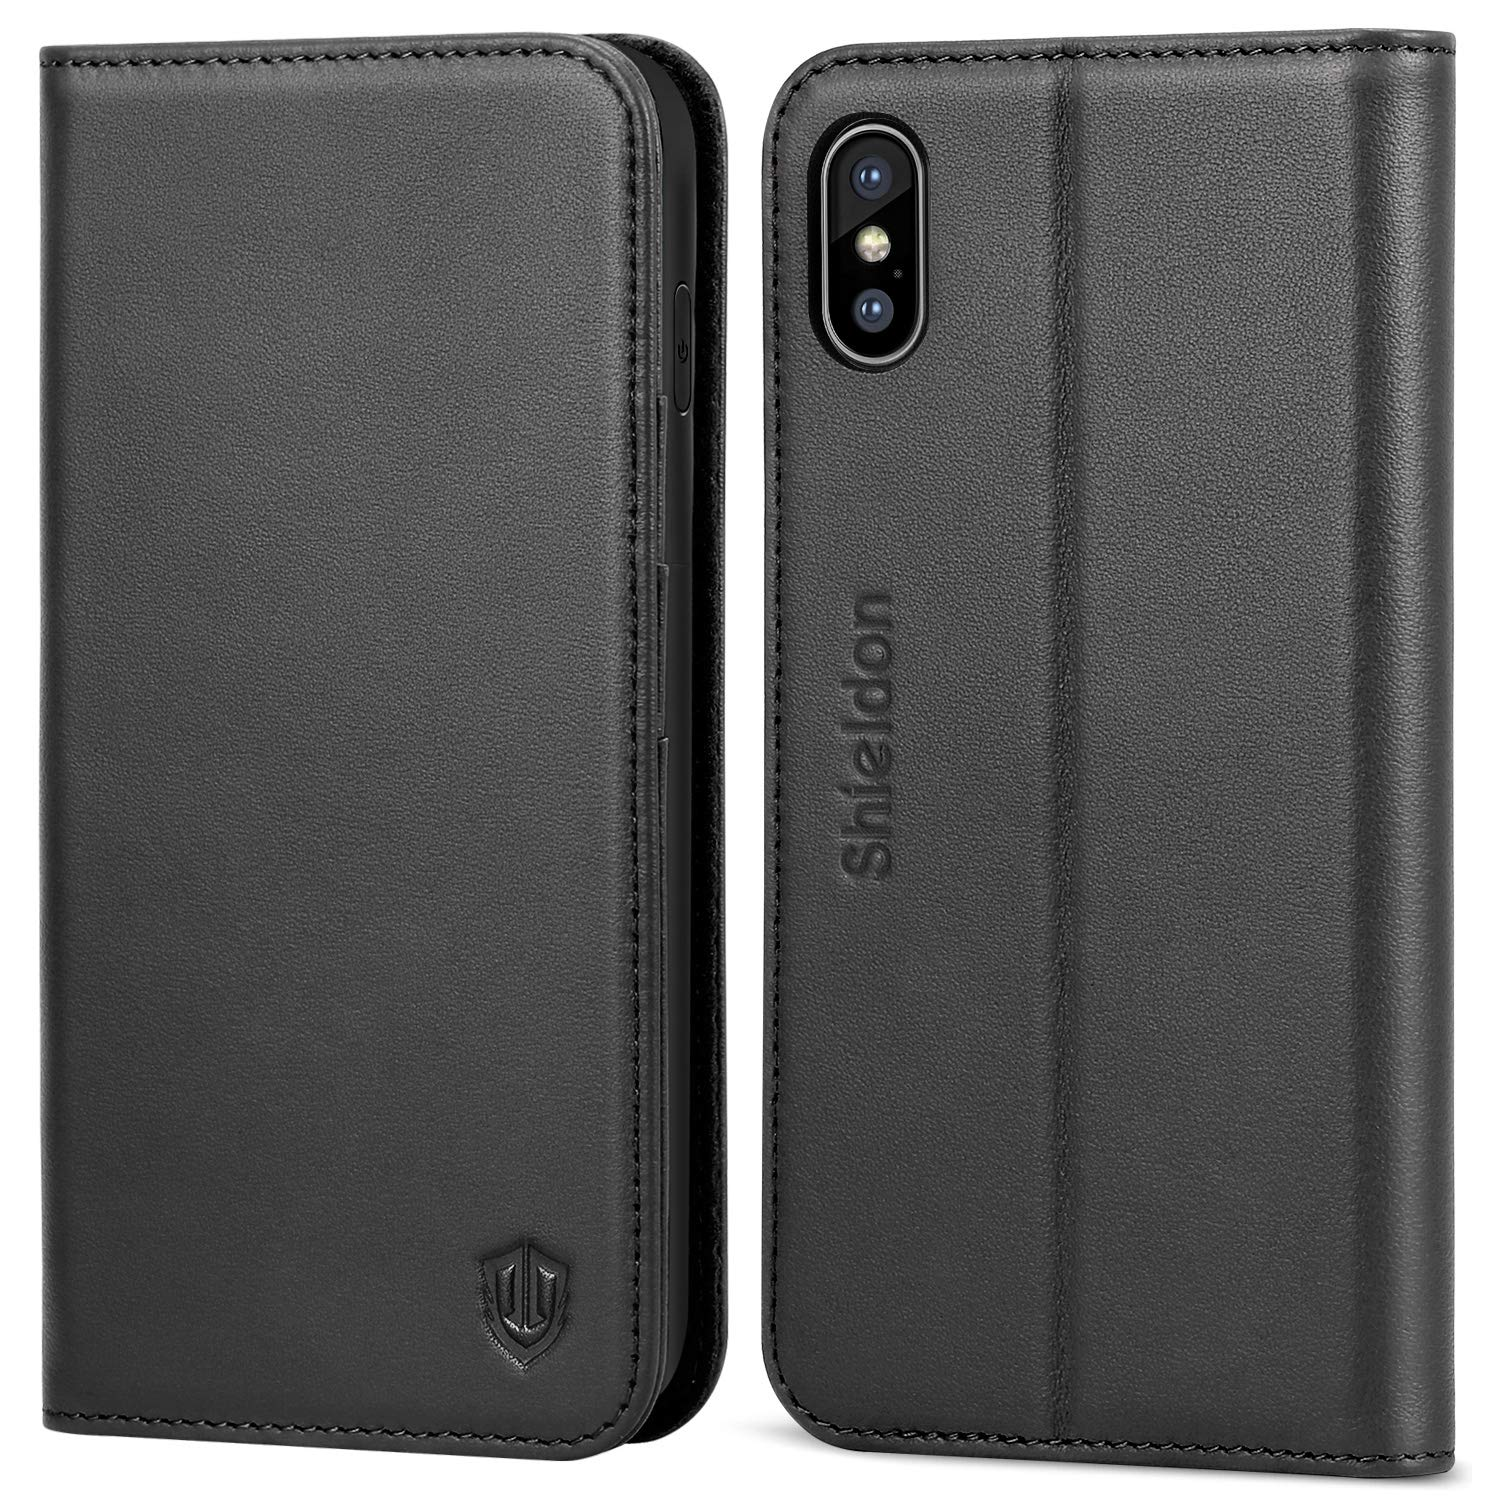 iPhone Xs Max Case, SHIELDON Genuine Leather iPhone Xs Max Wallet Case [Auto Wake/Sleep] [RFID Blocking] Credit Card Slot Flip Magnetic Stand Case Compatible with iPhone Xs Max (6.5'' 2018) - Black